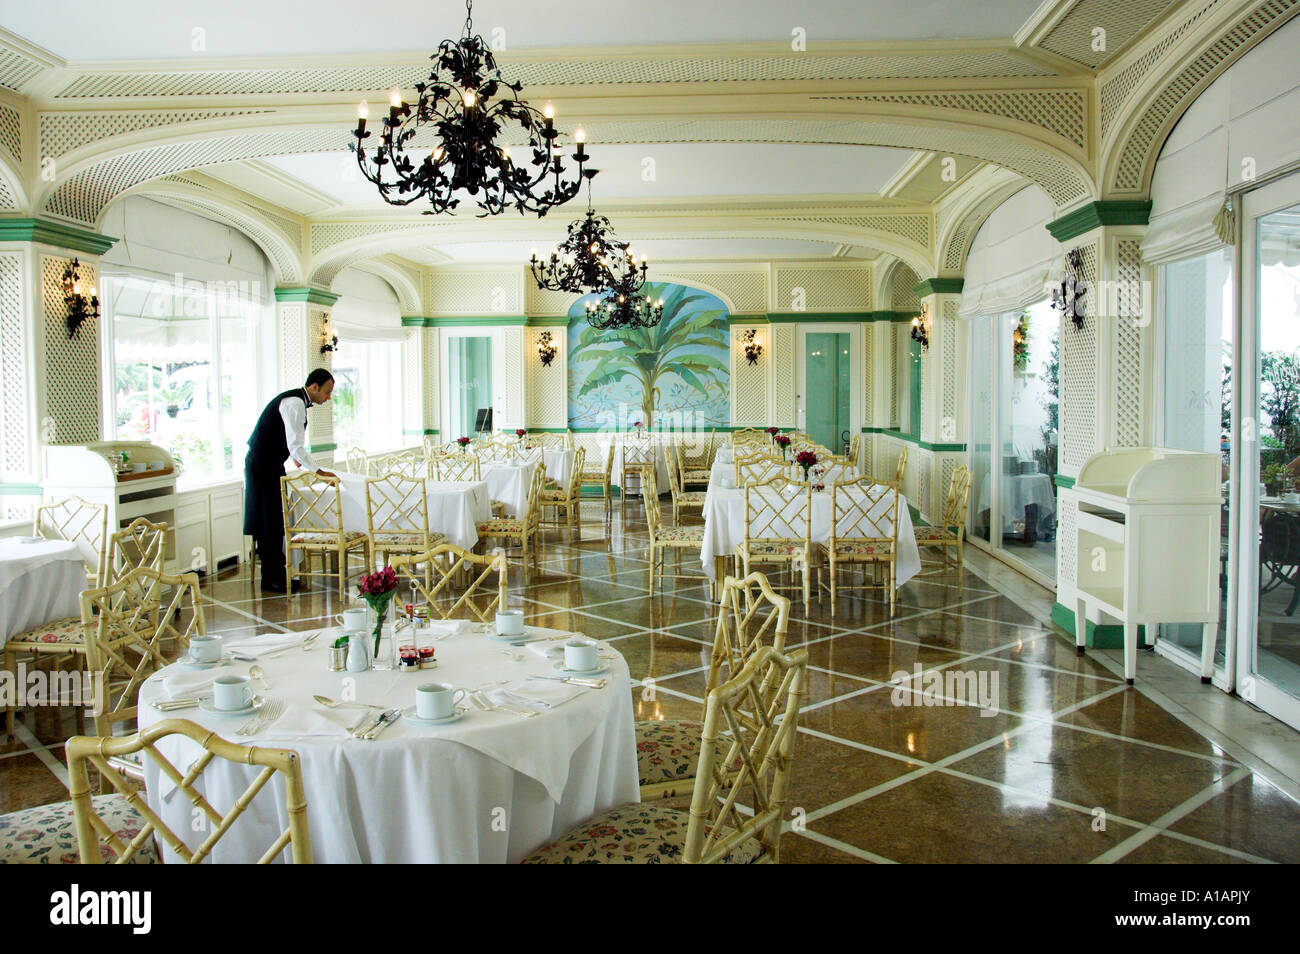 interior decor of the copacabana palace hotel dining room in rio